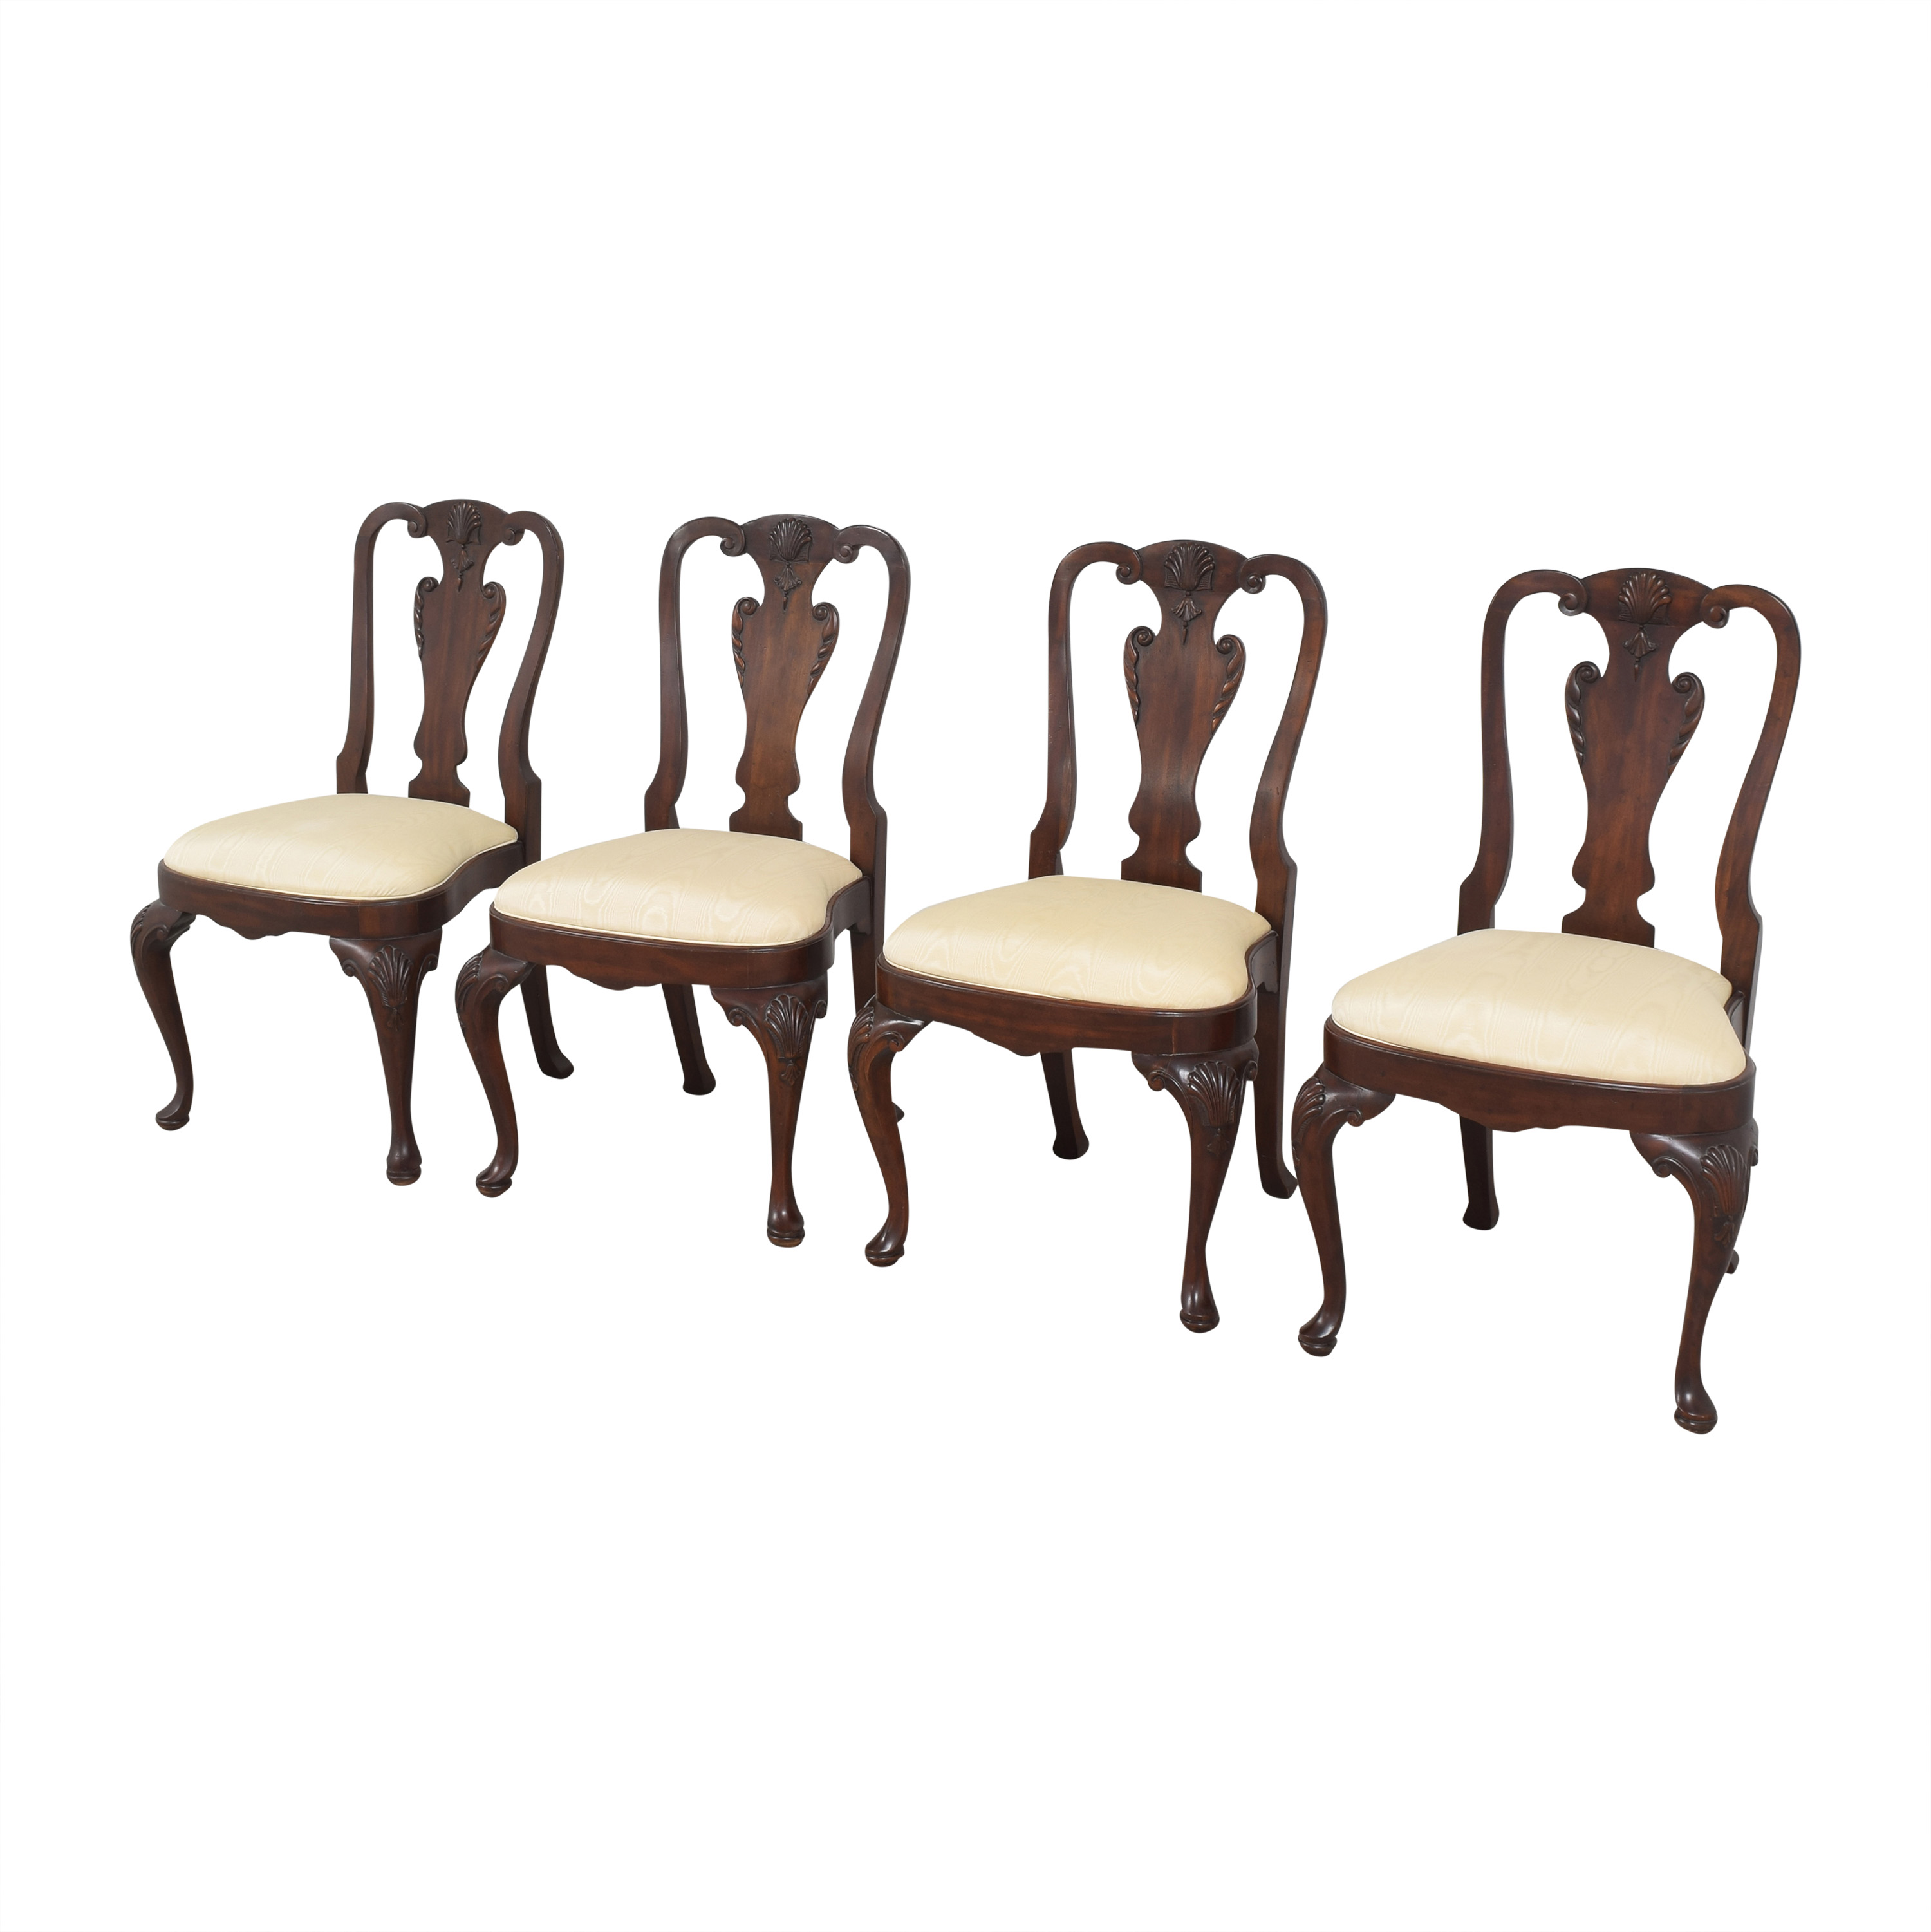 shop Maitland-Smith Regency Dining Chairs Maitland-Smith Chairs